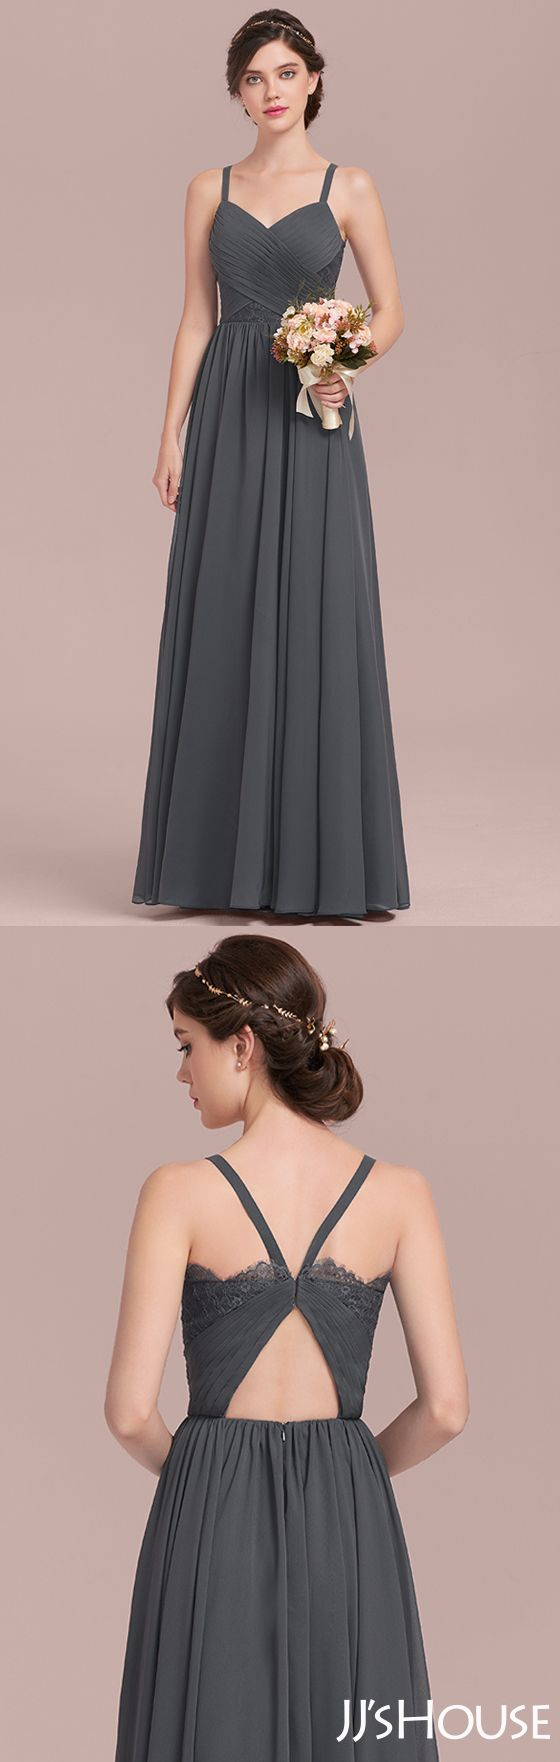 Classic color and eyecatching back design made this bridesmaid